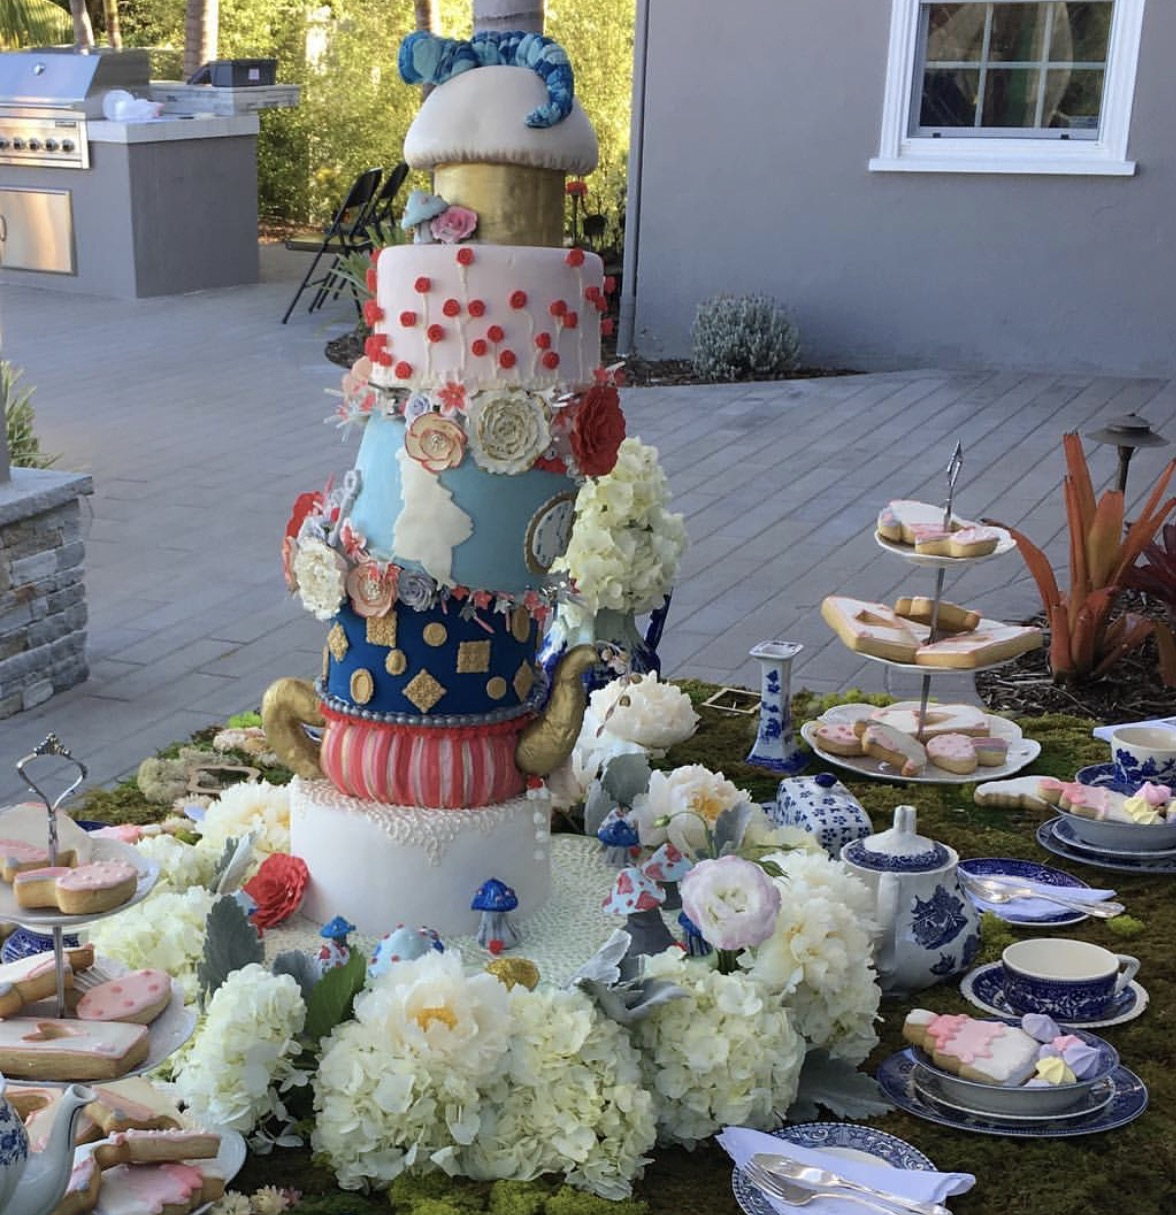 Topsy Turvy Alice in Wonderland themed cake